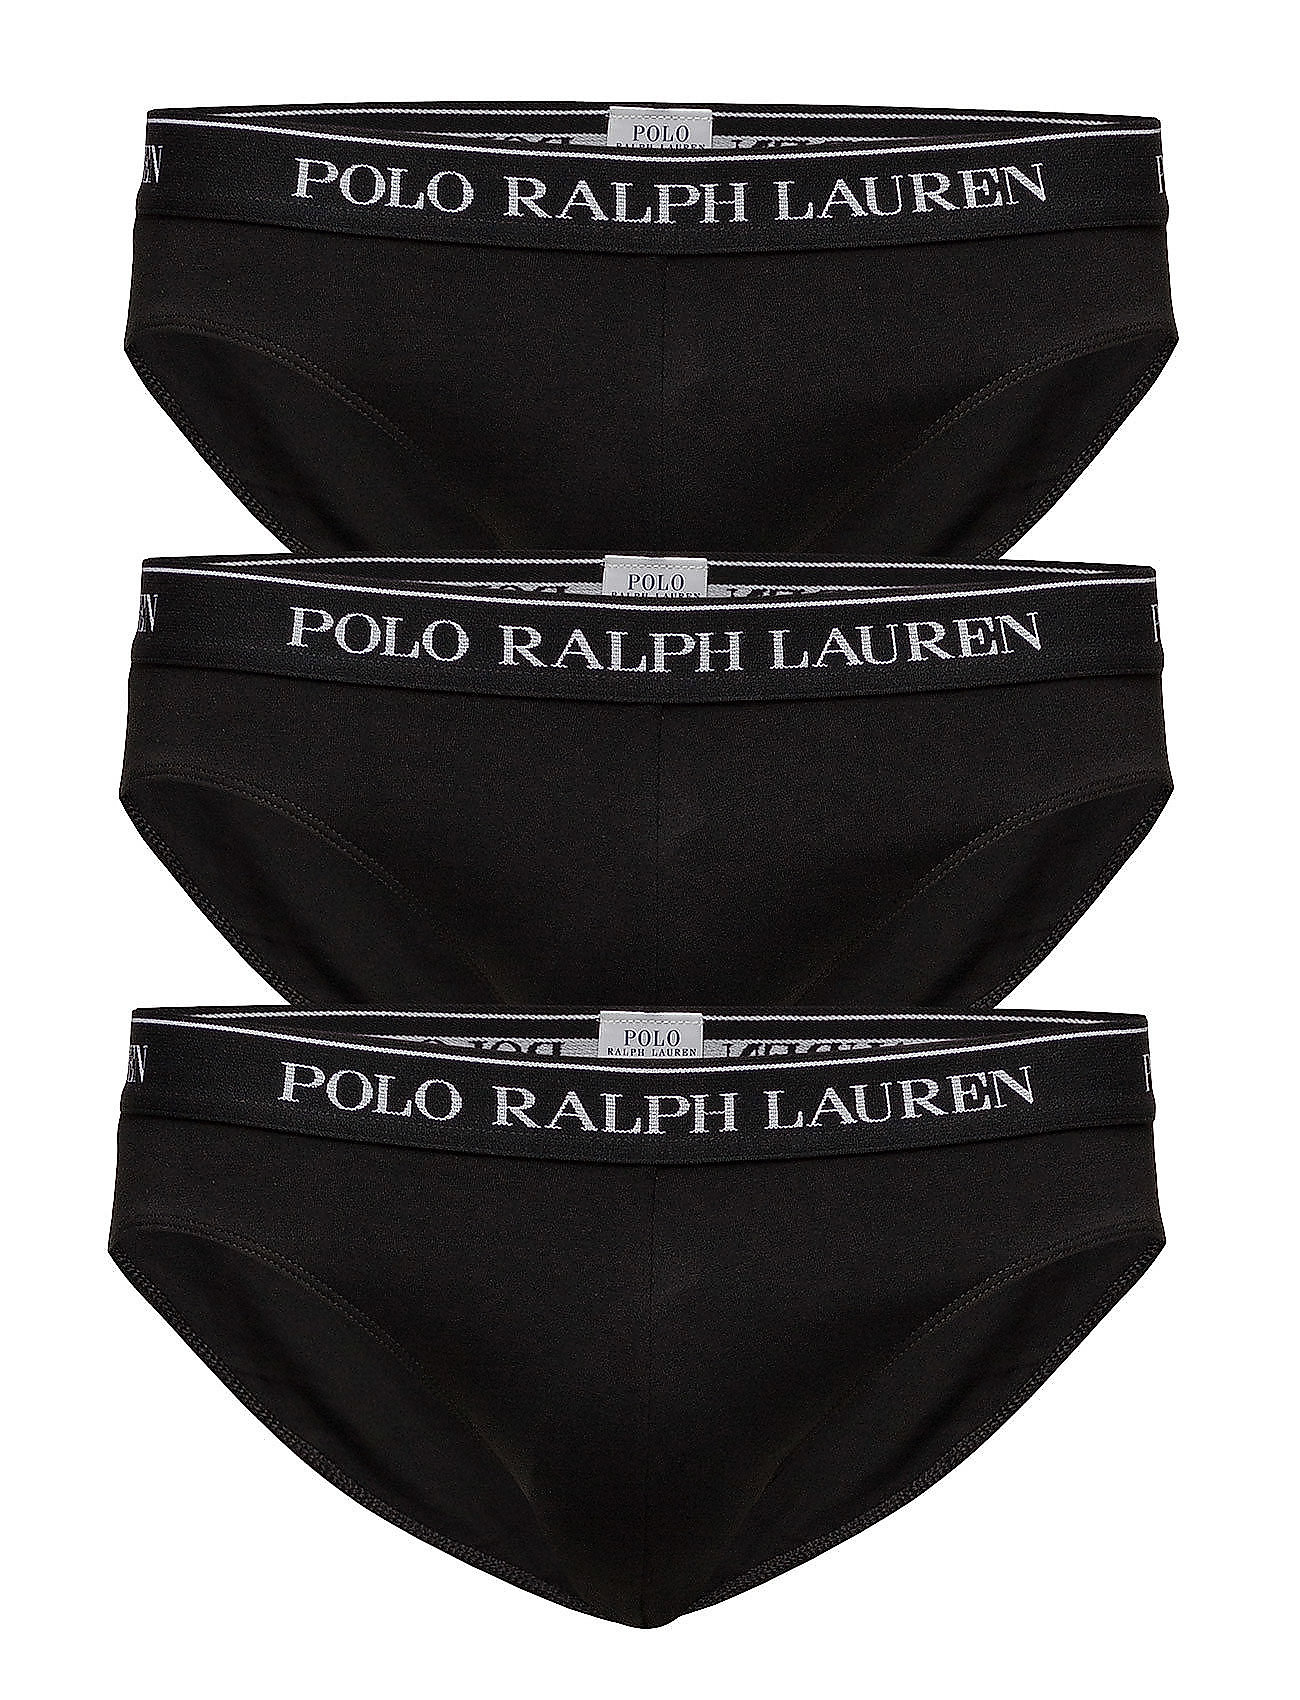 Polo Ralph Lauren Underwear 3 PACKS CLASSIC BRIEFS - BLACK